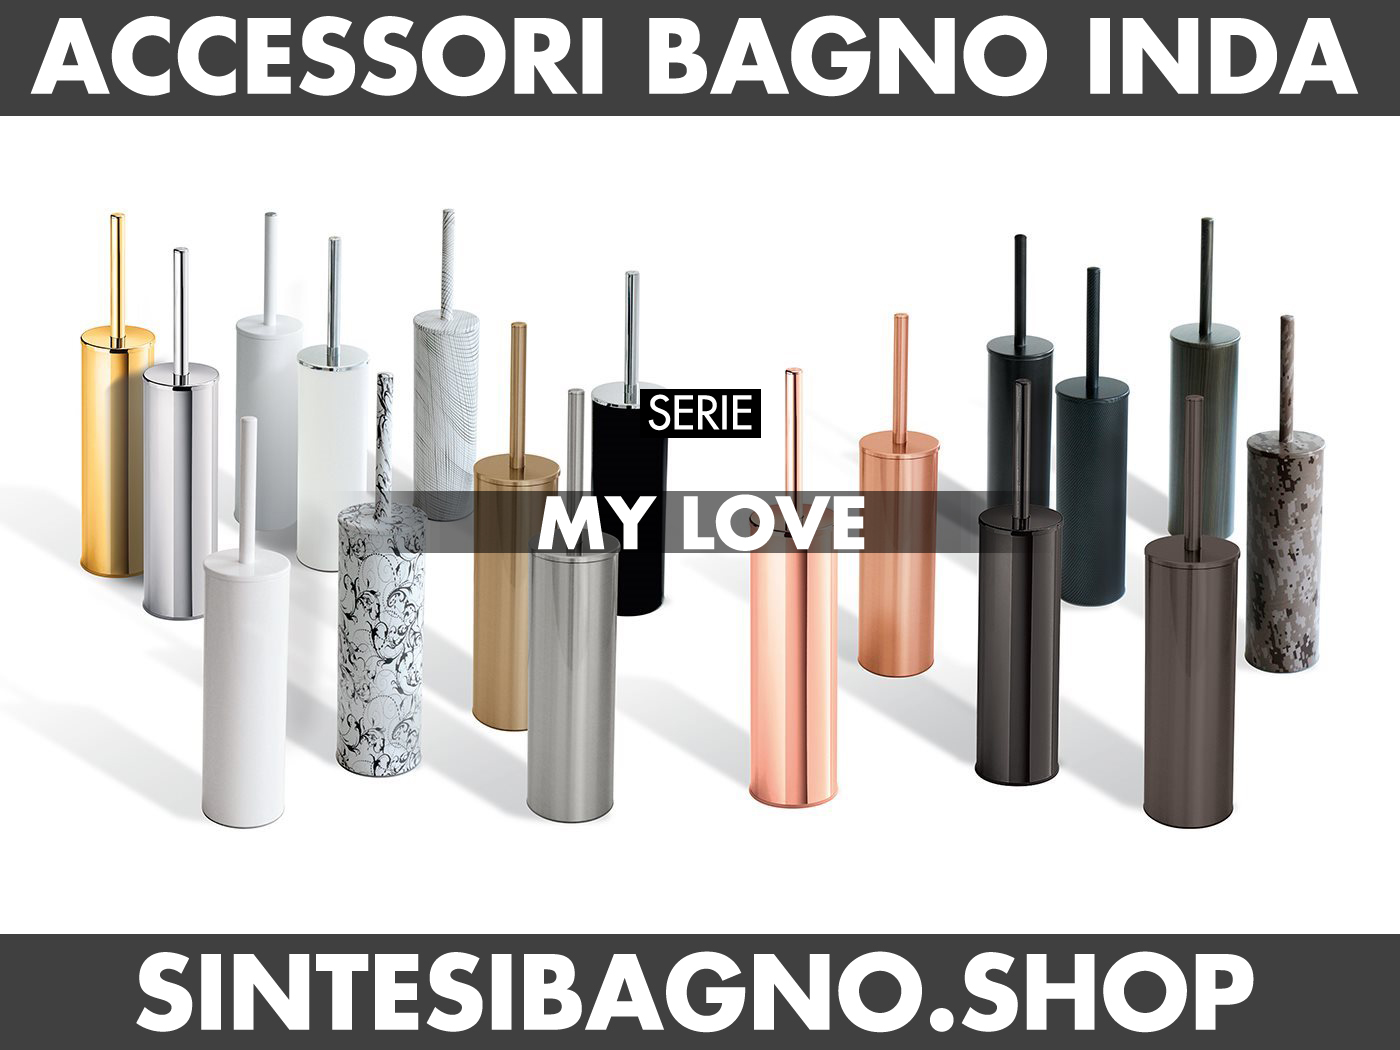 Accessori Bagno Inda serie MY LOVE